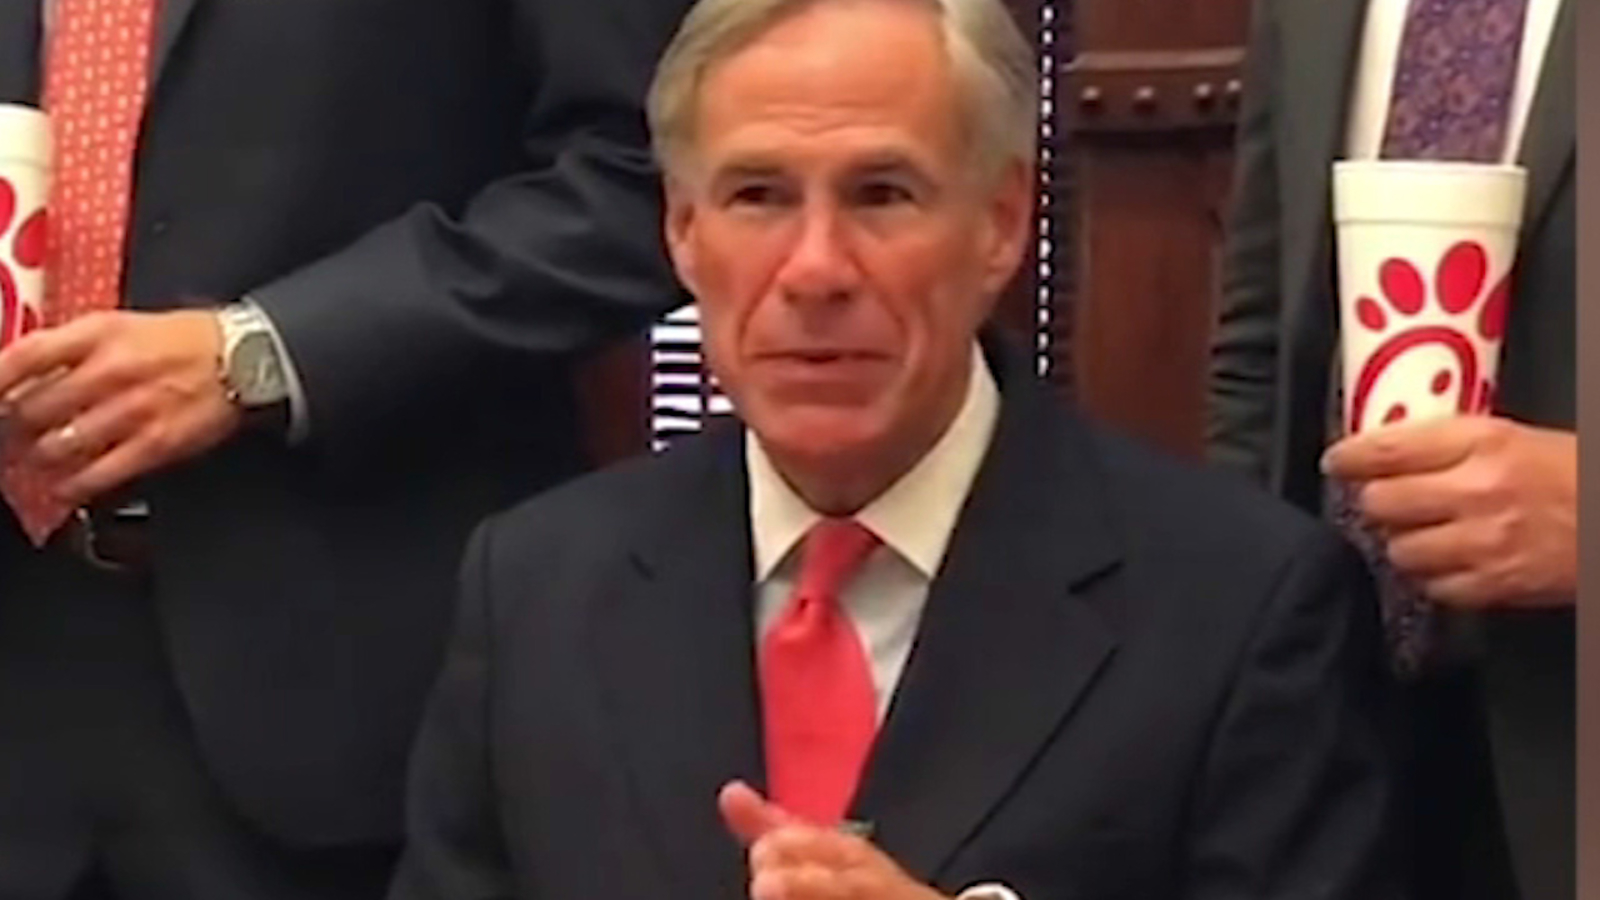 Governor Greg Abbott signs Chick-fil-A law to protect 'religious liberty'